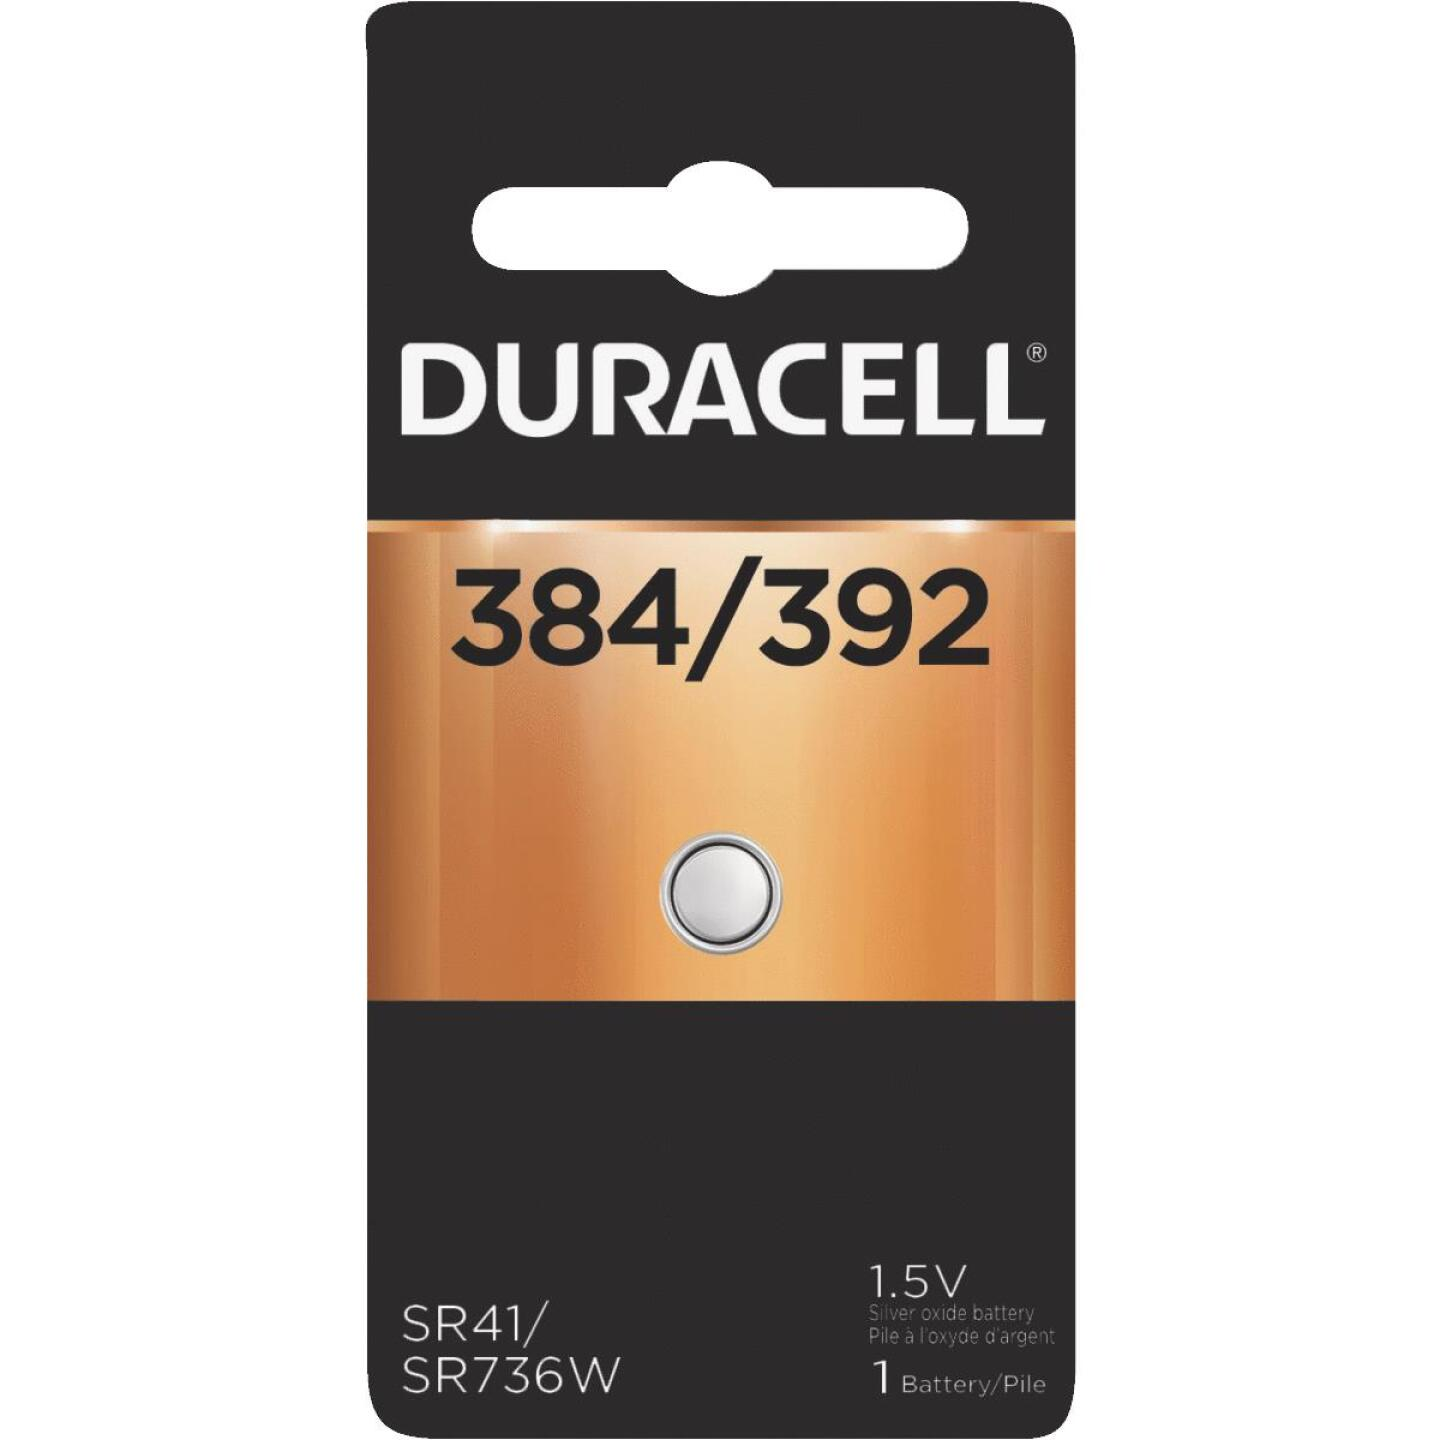 Duracell 384/392 Silver Oxide Button Cell Battery Image 1